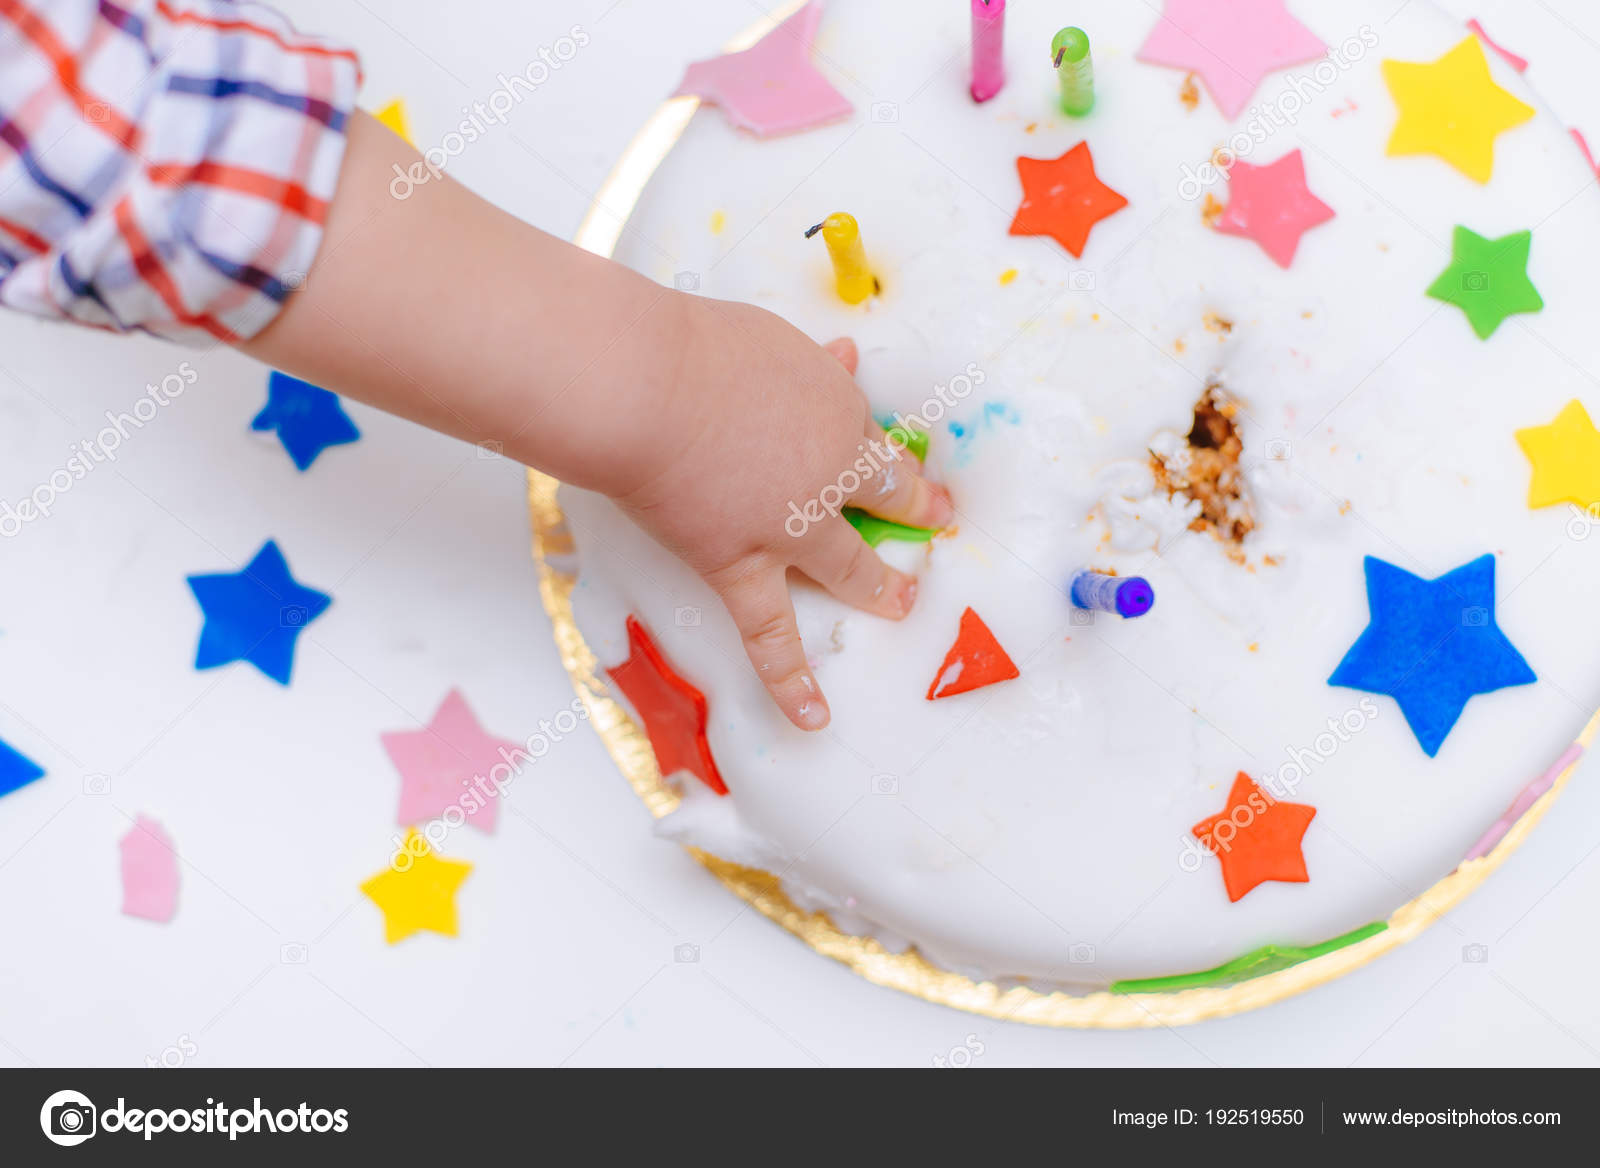 A Small Child Touches His Celebratory Cake That Lies On The Table Photo By Ahfotomailru